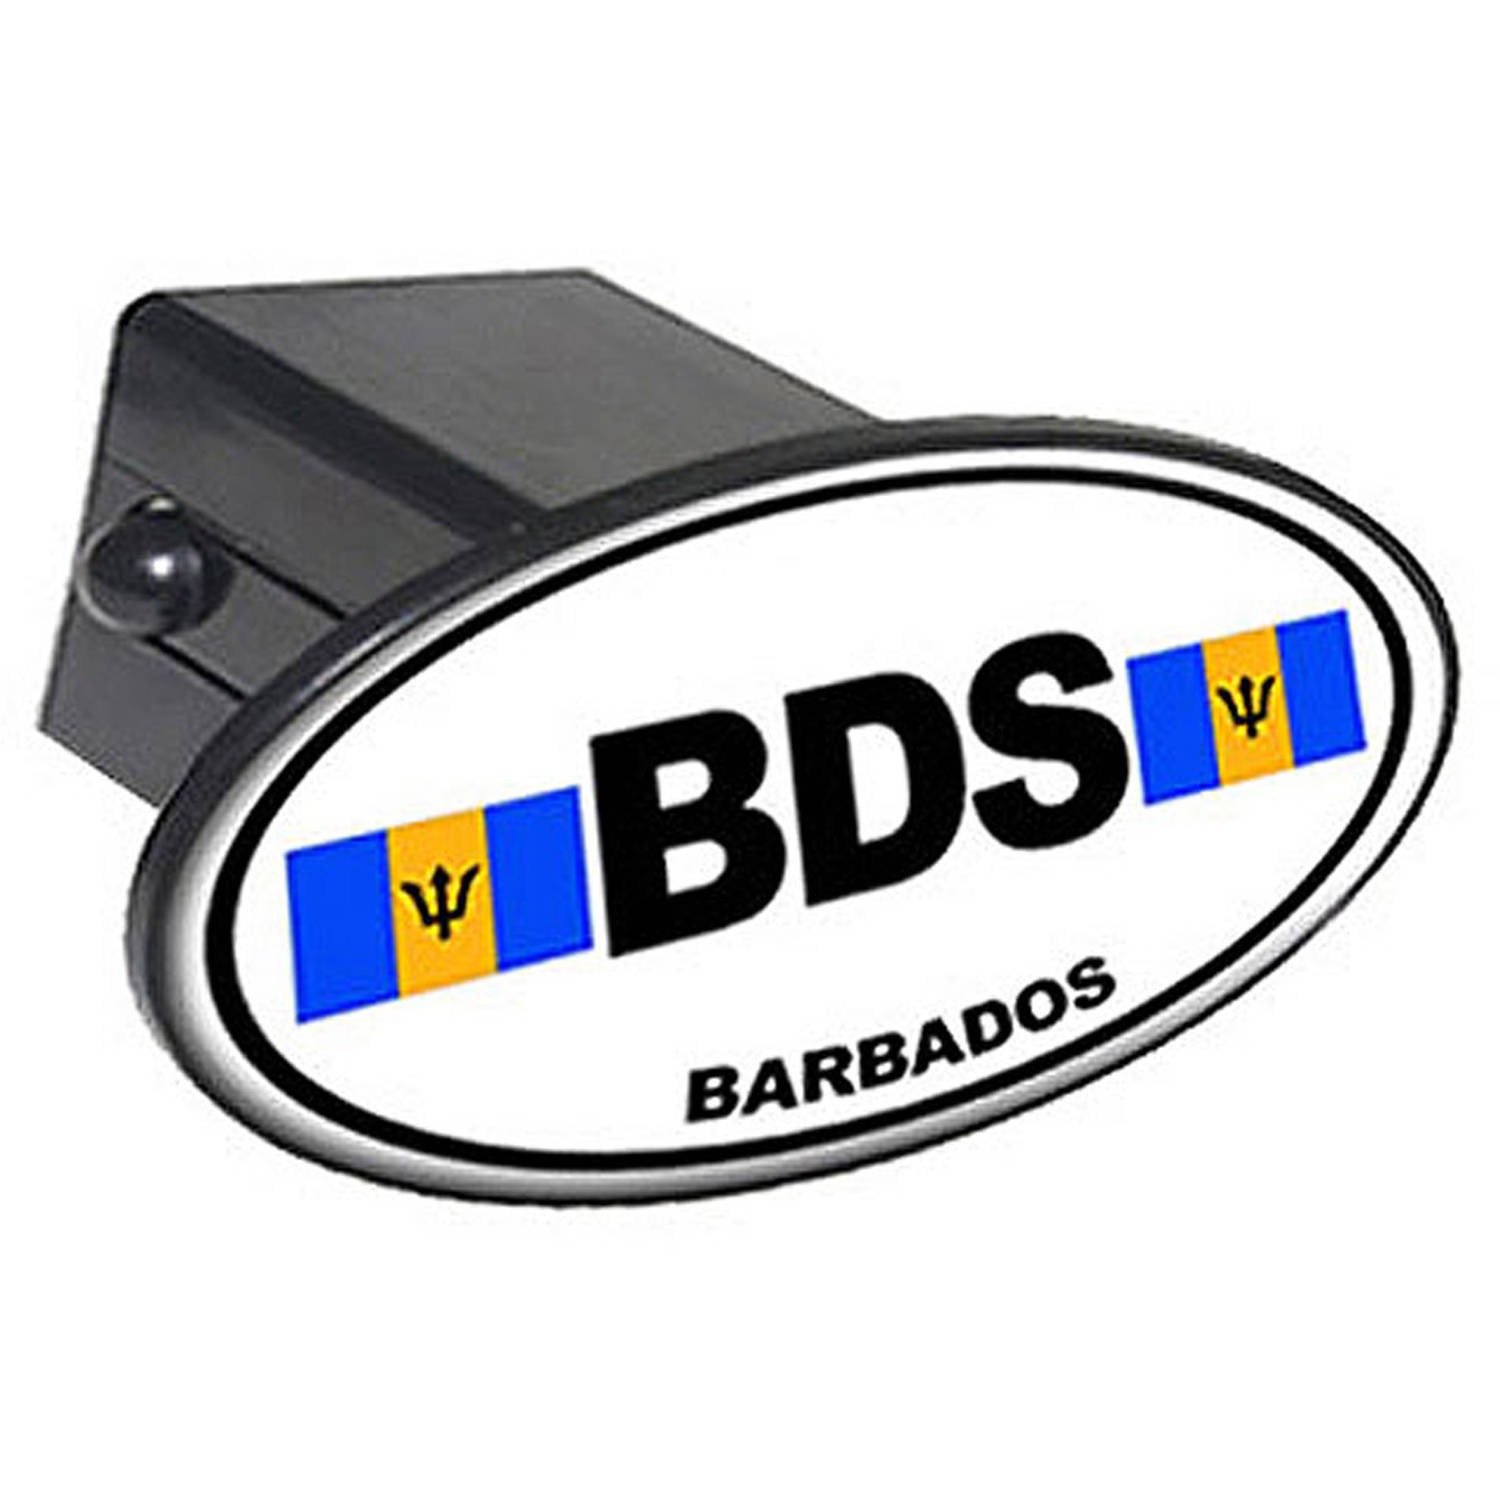 """Bds Barbados Country Euro Auto Oval 2"""" Oval Tow Trailer Hitch Cover Plug Insert by Graphics and More"""